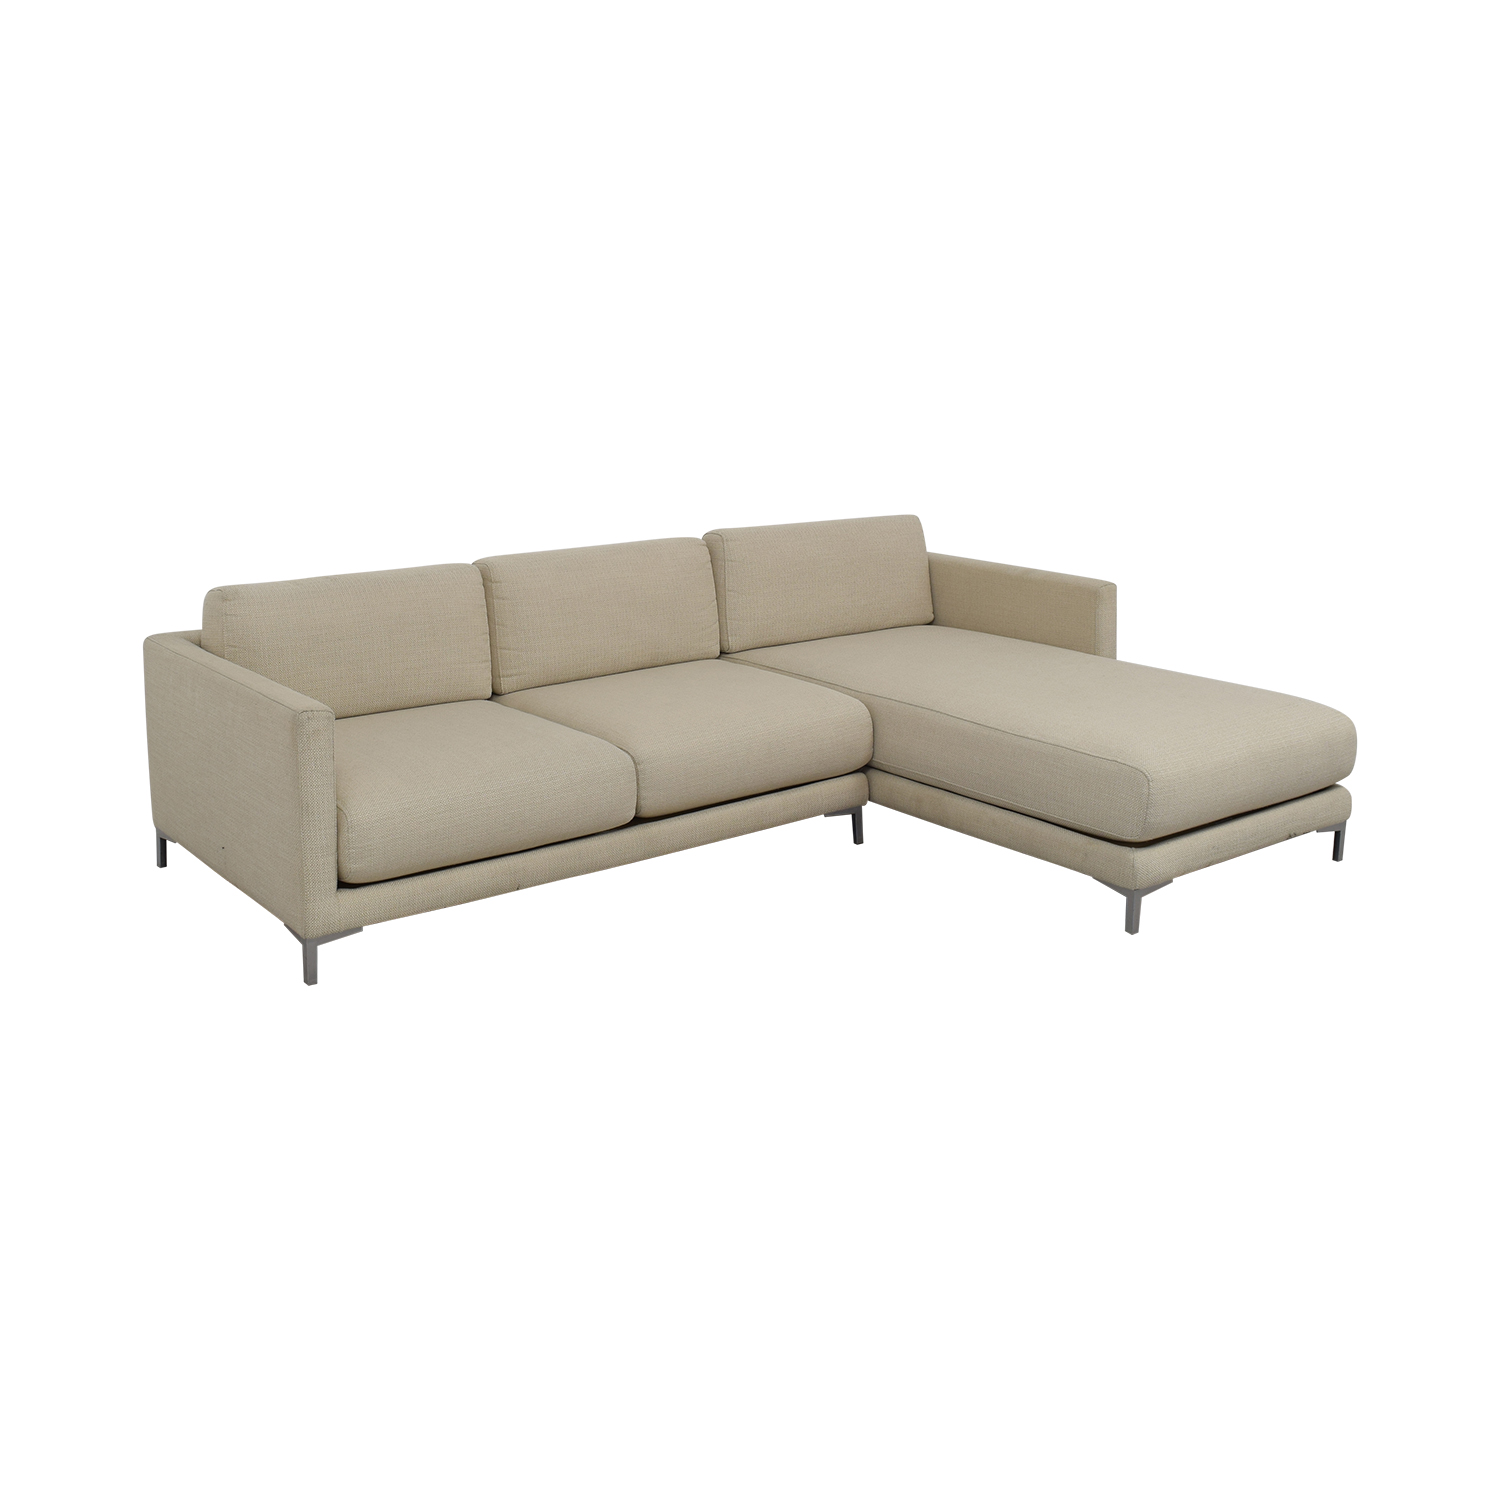 CB2 District Sectional Sofa with Chaise / Sectionals